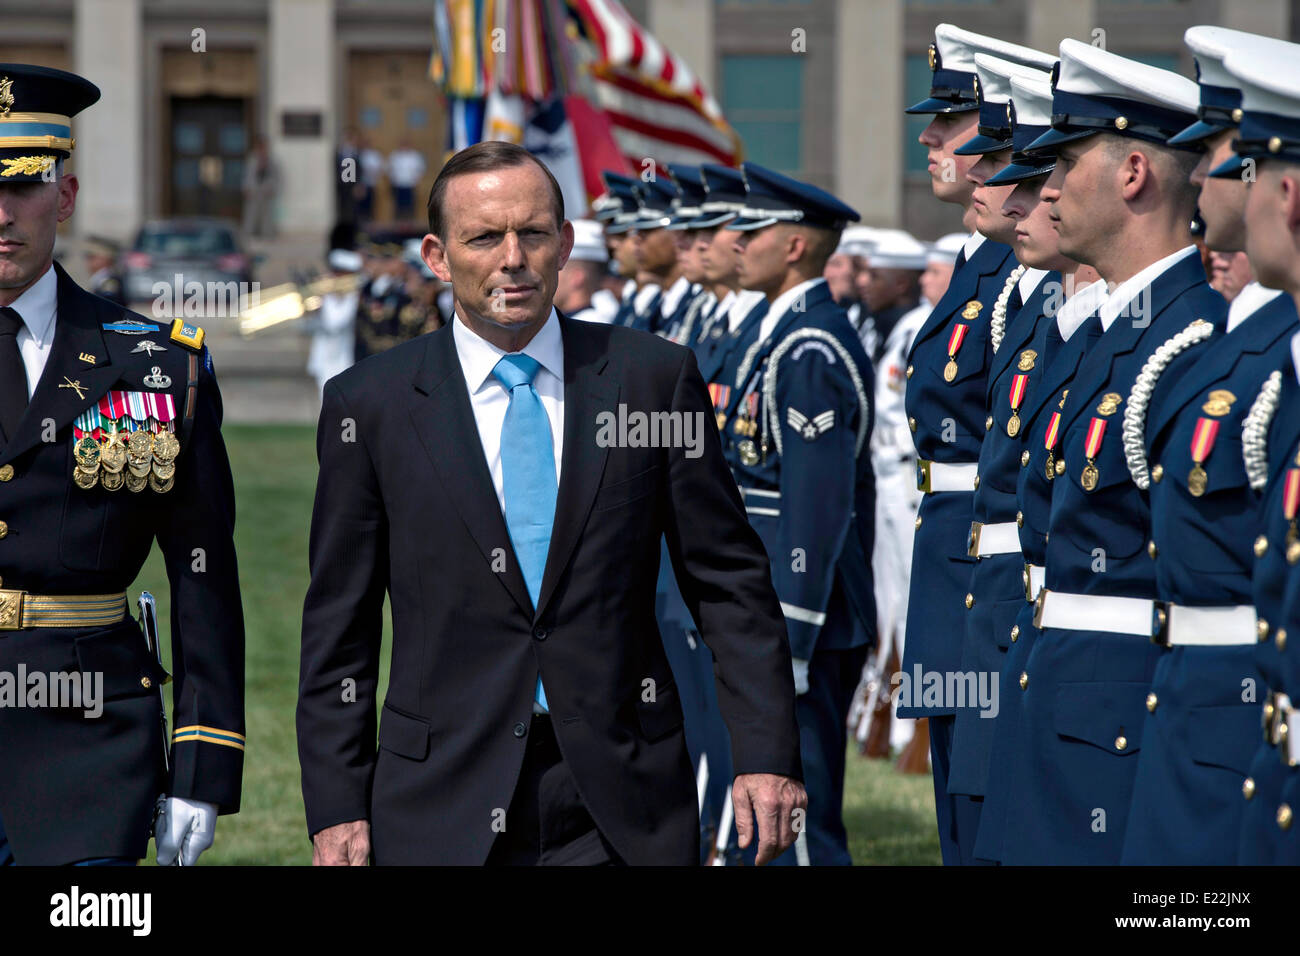 Australian Prime Minister Tony Abbott reviews the honor guard during an arrival ceremony at the Pentagon June 13, - Stock Image